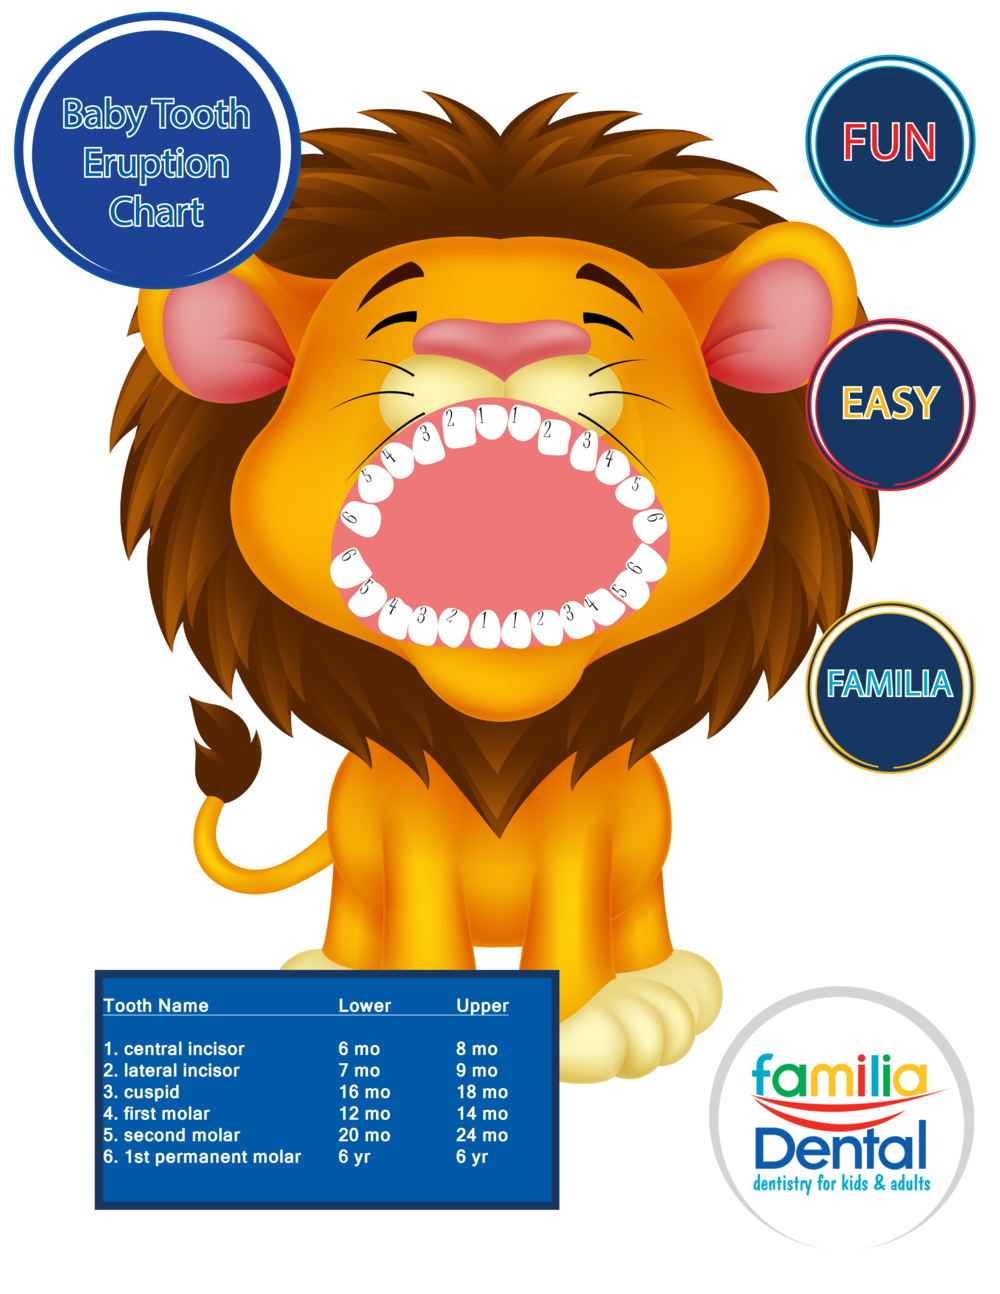 Baby tooth Chart -  When do baby teeth come in? What age do babies get their teeth?